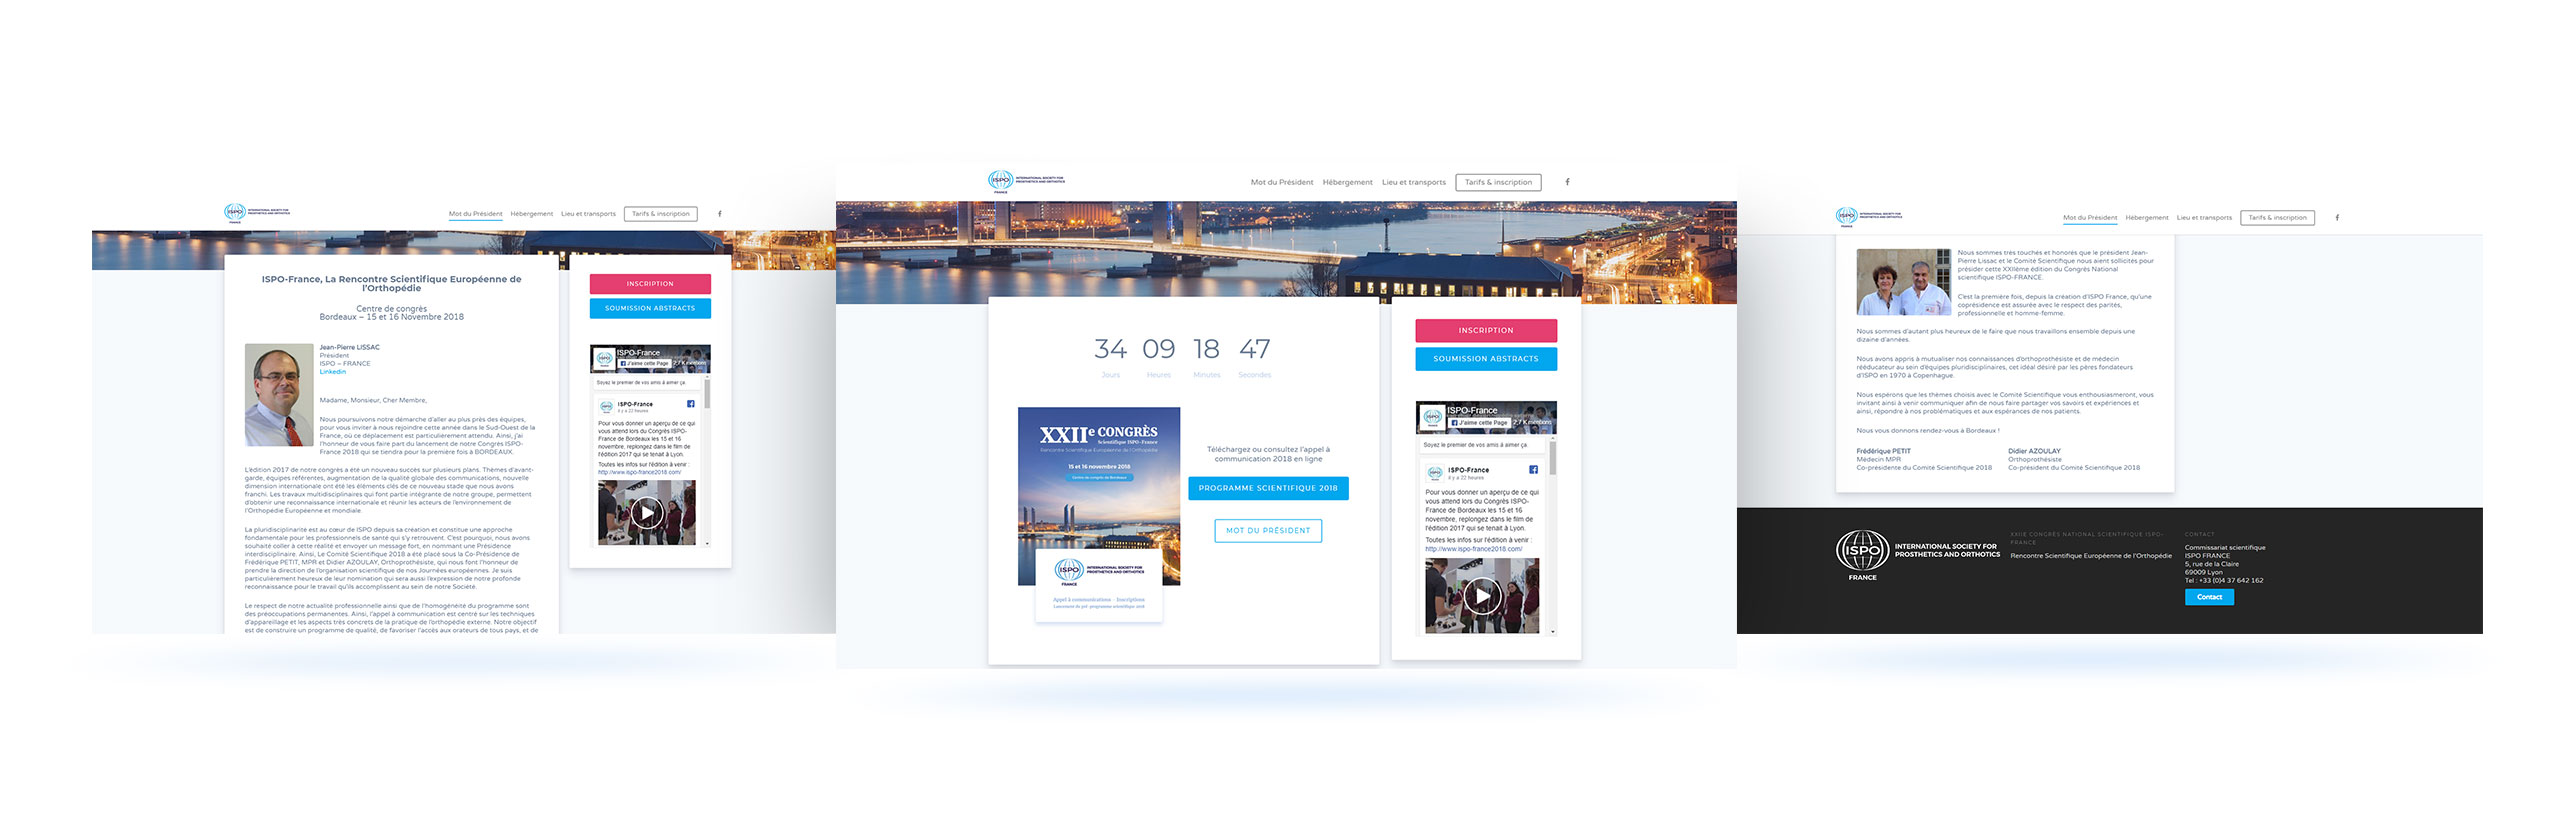 congres ispo 2018 page client site wordpress lyon agence responsible application webdesin graphisme illustration boutique ecommerce